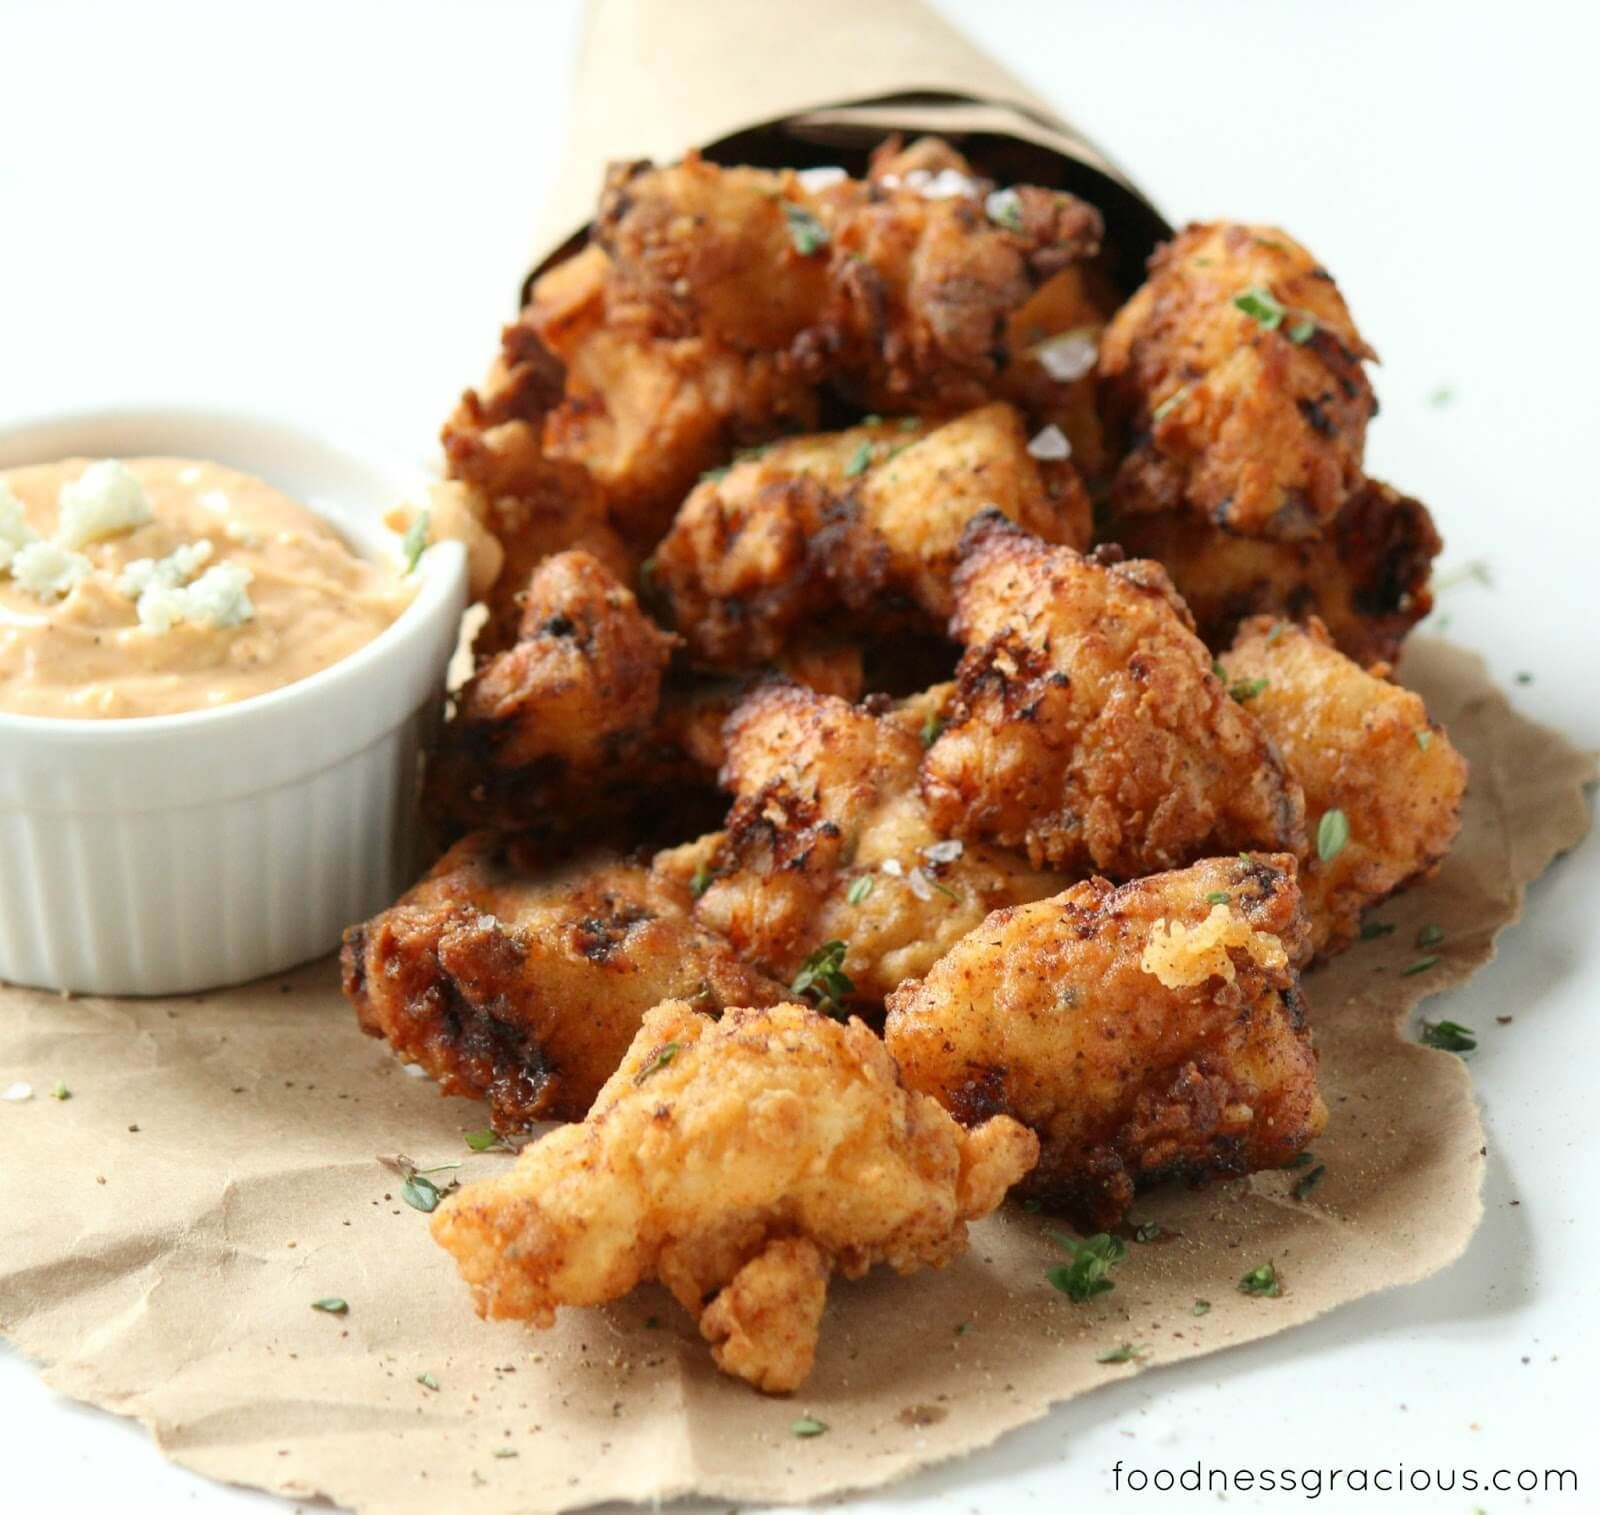 Crunchy and addictive, these chicken nuggets are the best I've ever tasted. Serve them with the spicy blue cheese dip and be prepared for game day!